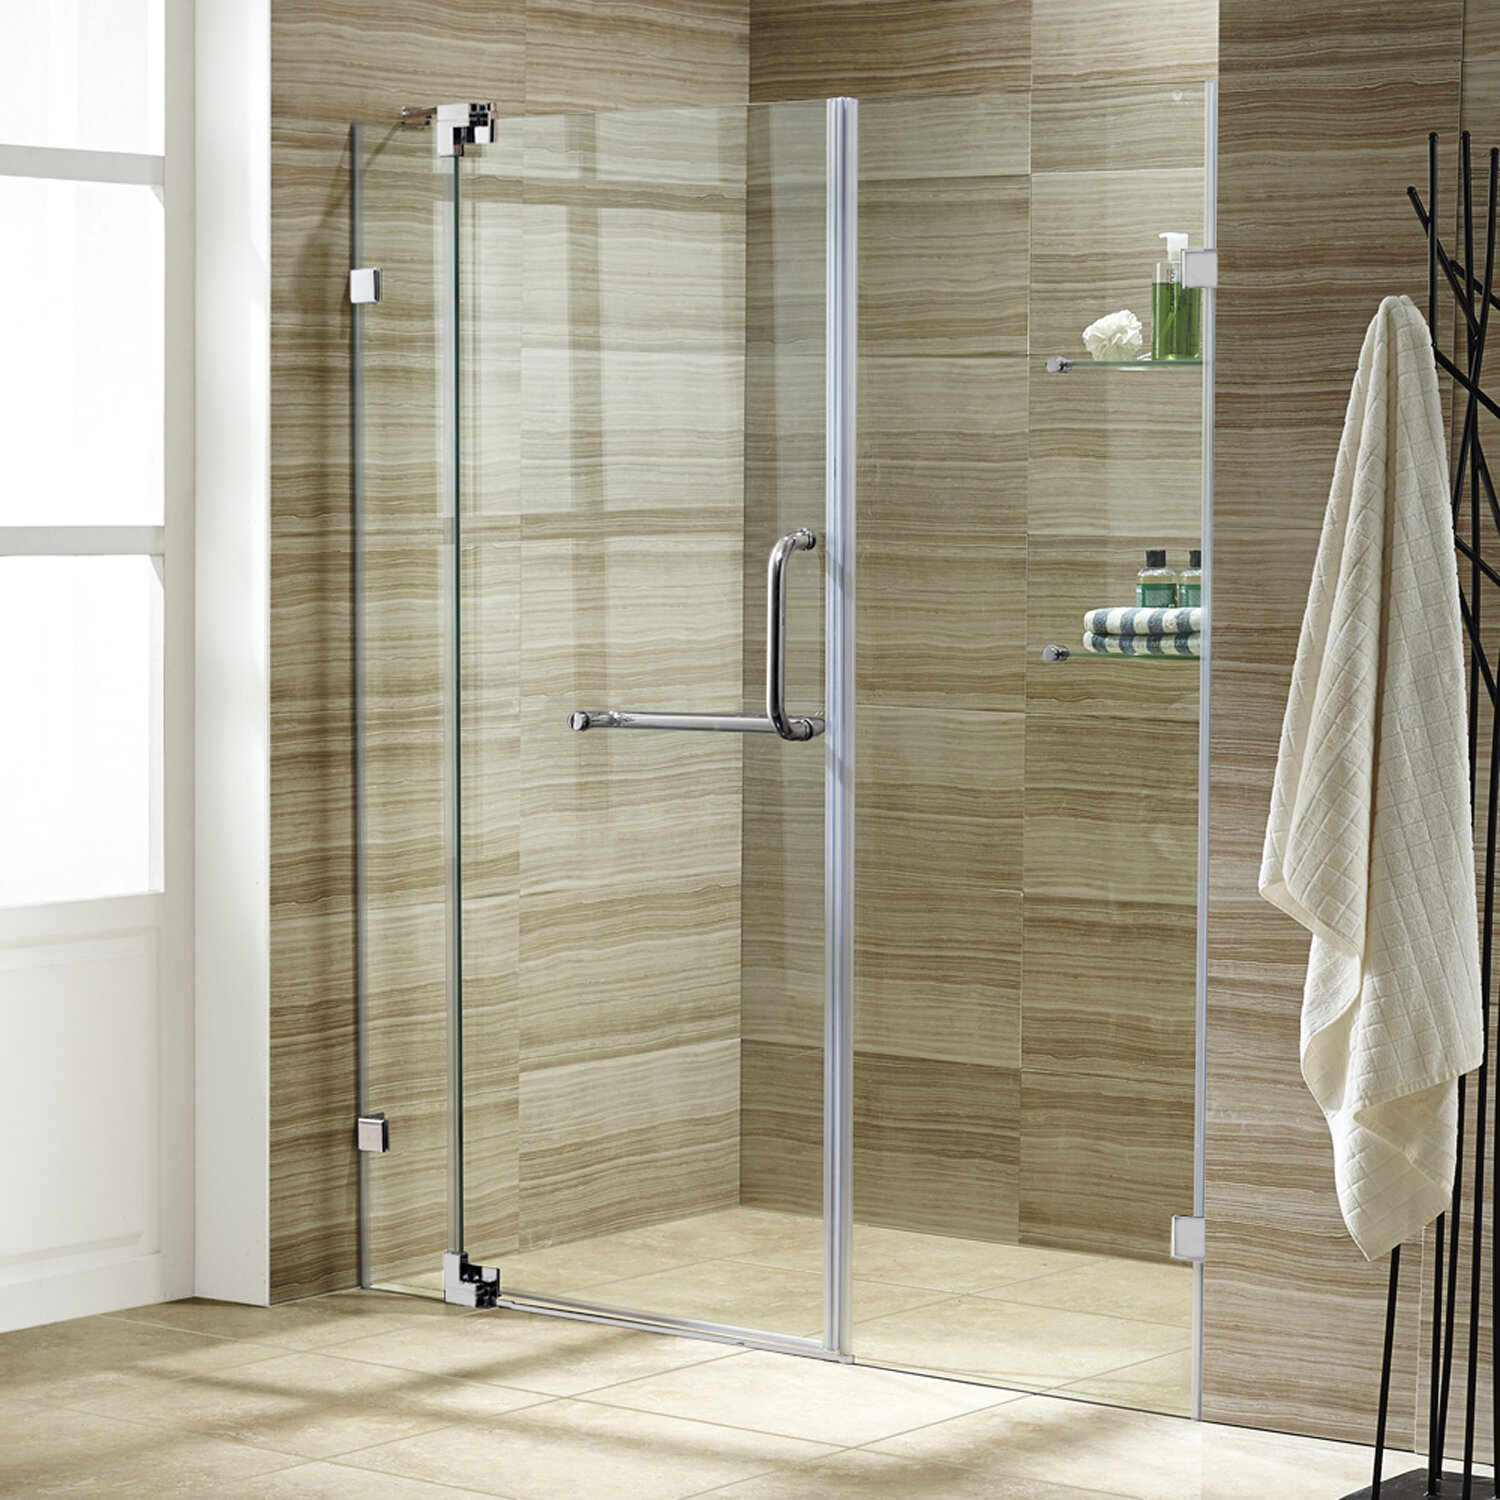 Pirouette 48 X 72 Pivot Frameless Shower Door With Flex Sizing Technology